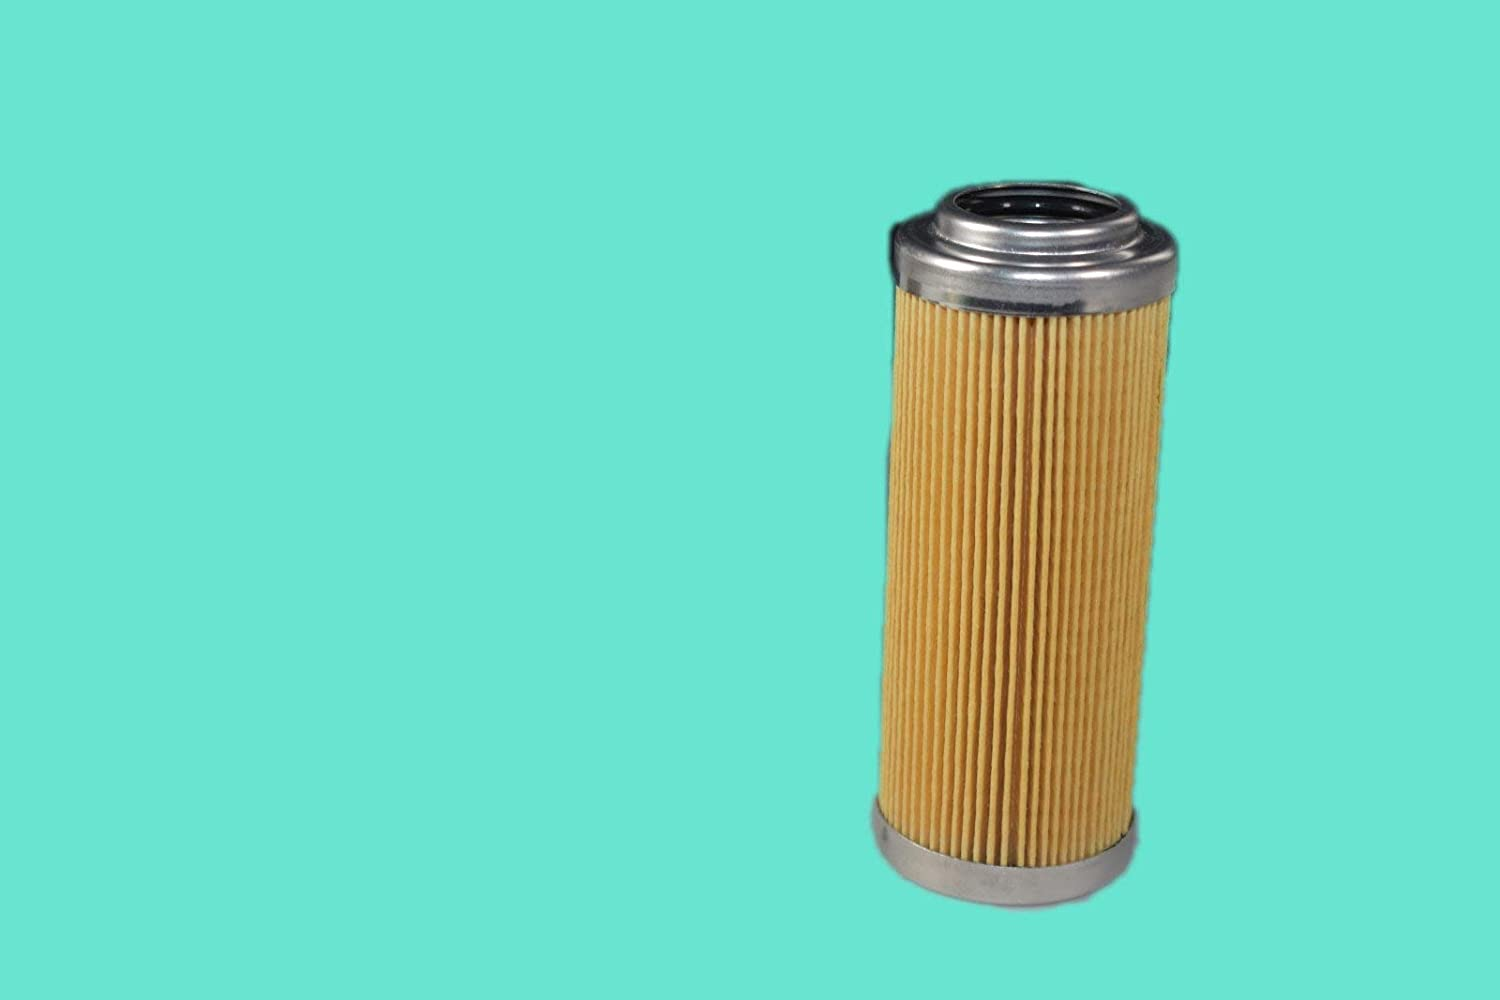 Parker G01372 Replacement Filter by Mission Filter Pack of 4